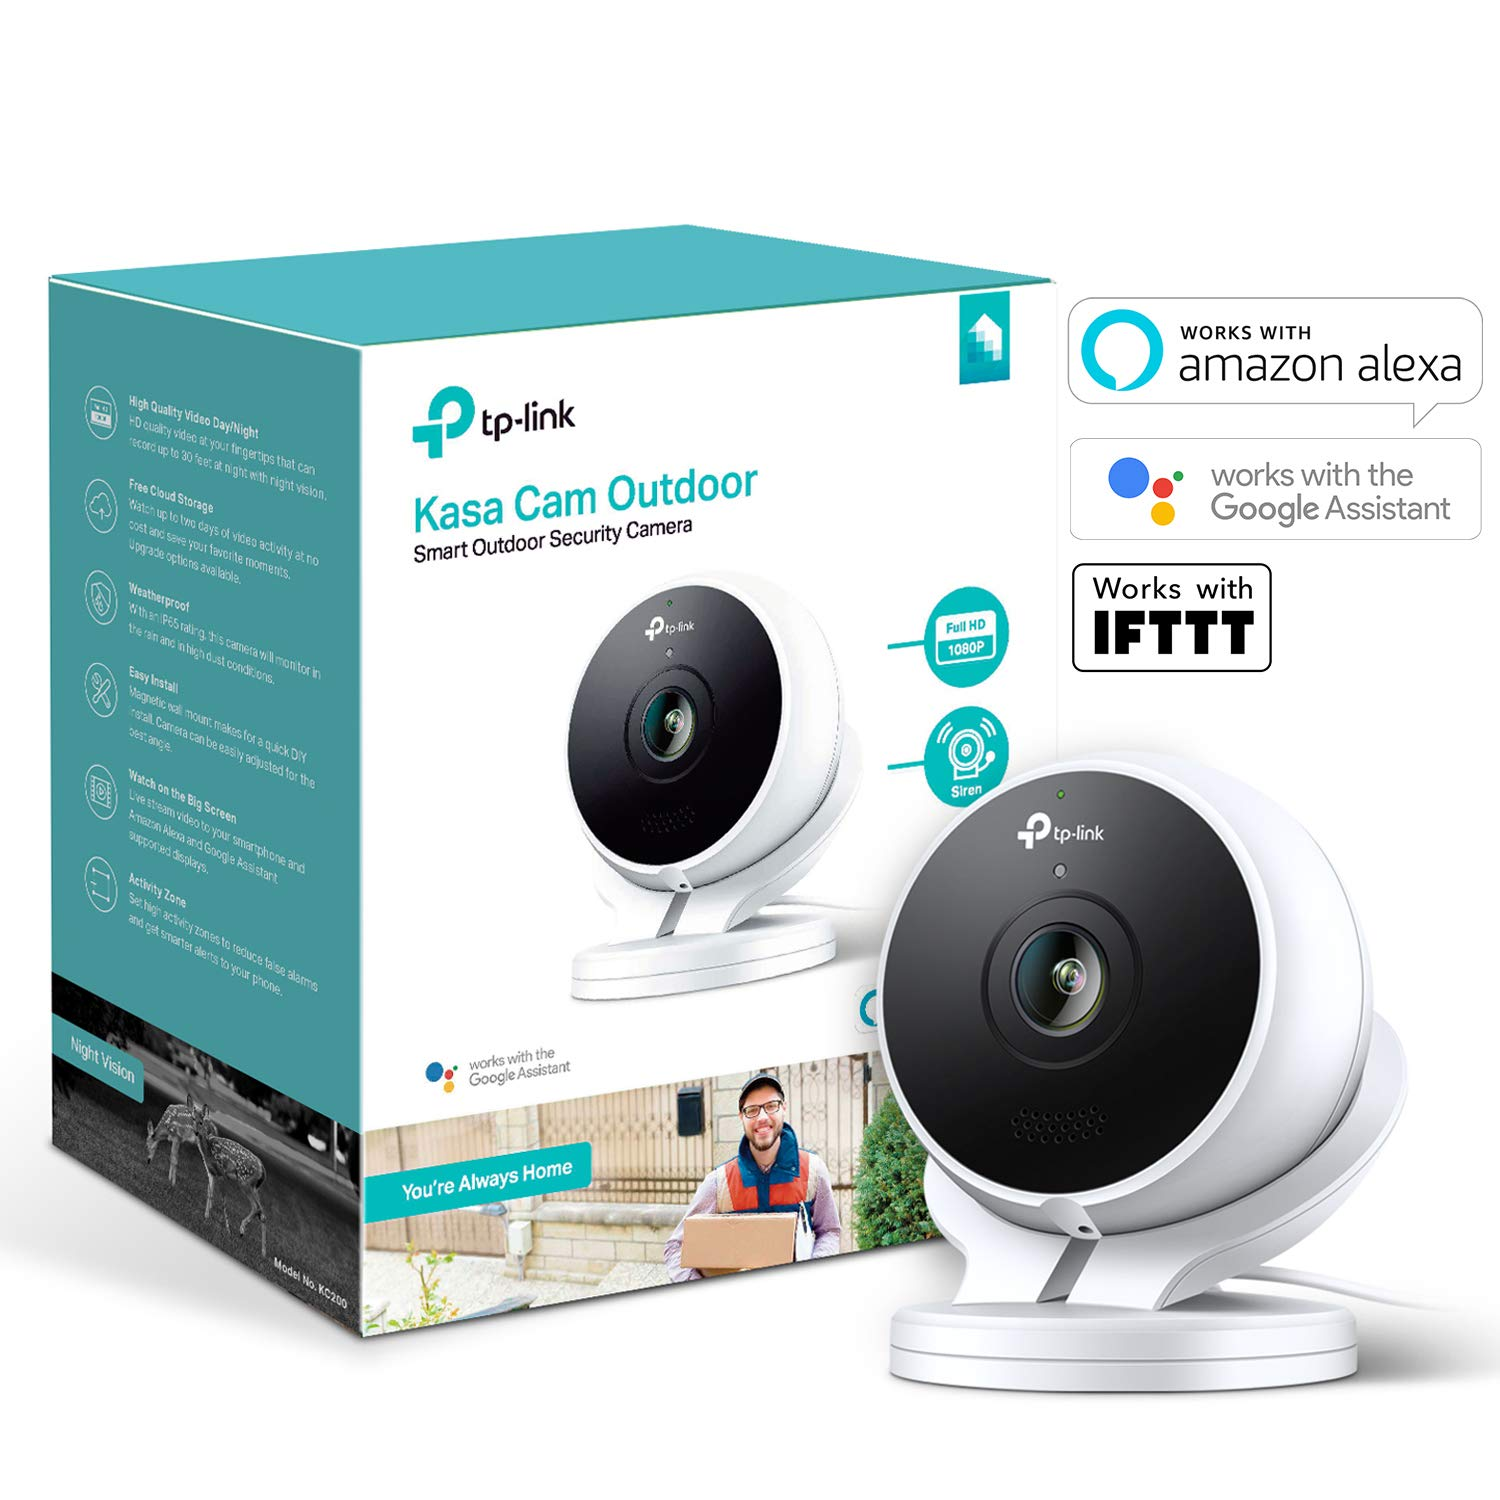 TP-Link Smart Outdoor Security Camera, Weatherproof, No Hub Required, Works  with Alexa(Echo Spot/Show and Fire TV), Google Home Hub and IFTTT, 1080p,